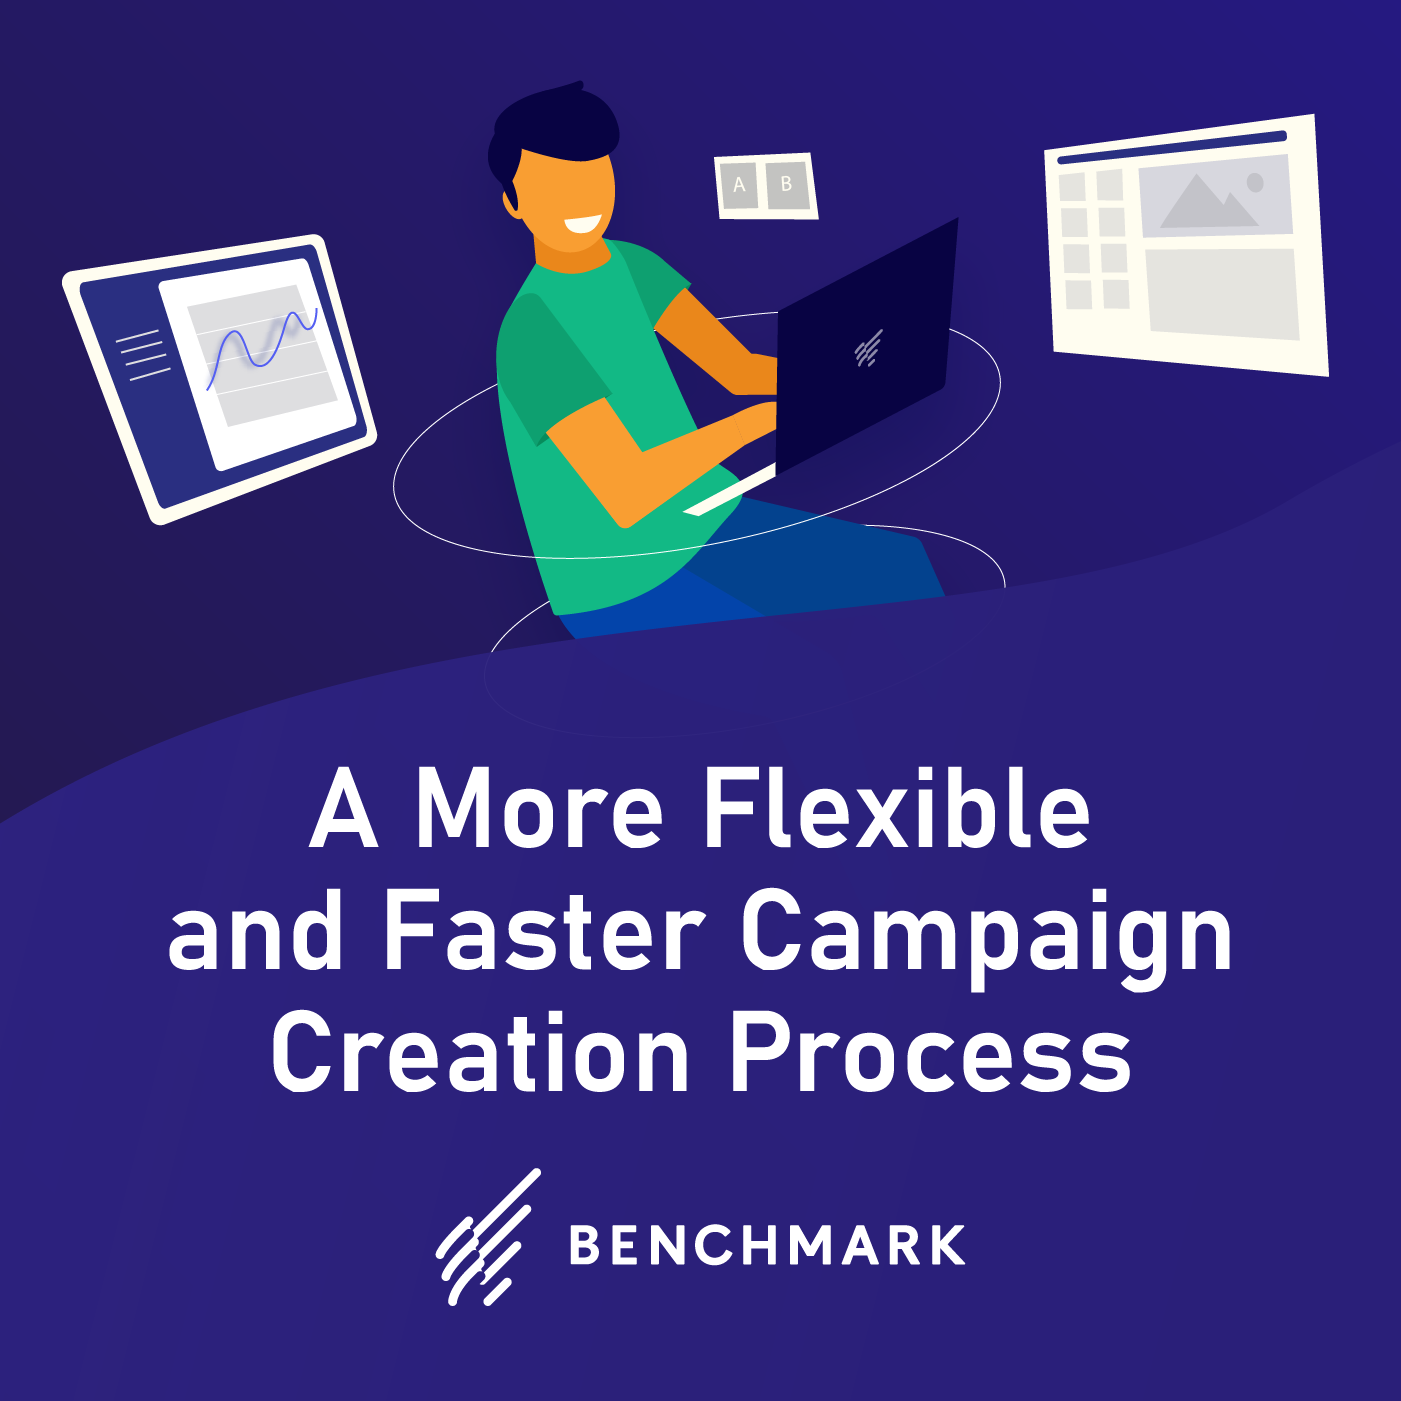 Inside Look: A More Flexible and Faster Campaign Creation Process